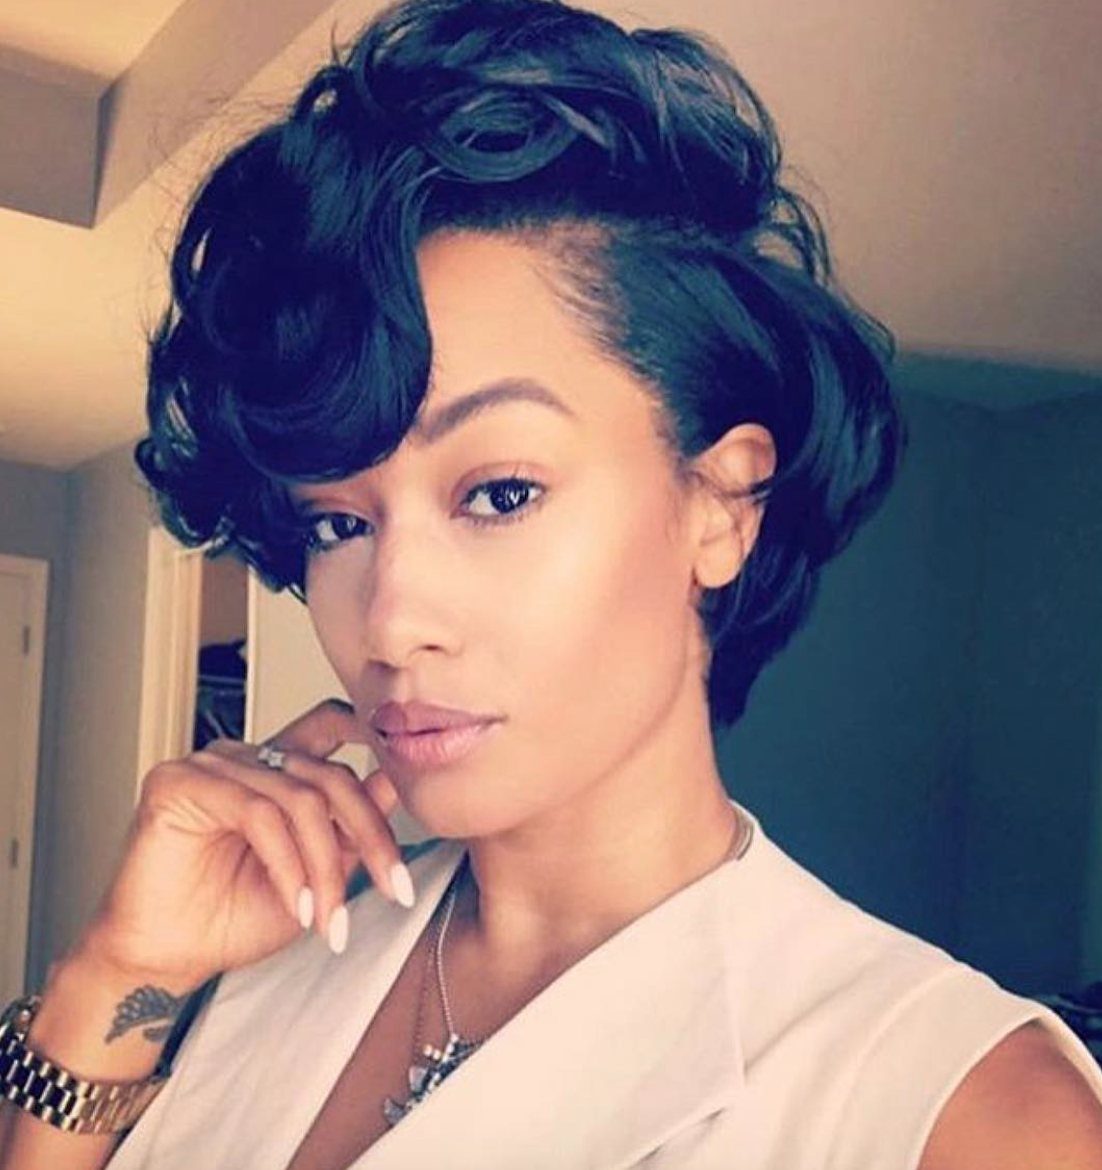 Short Hairstyles Black Hair Beautiful Luvcrystalrenee  Httpsblackhairinformation